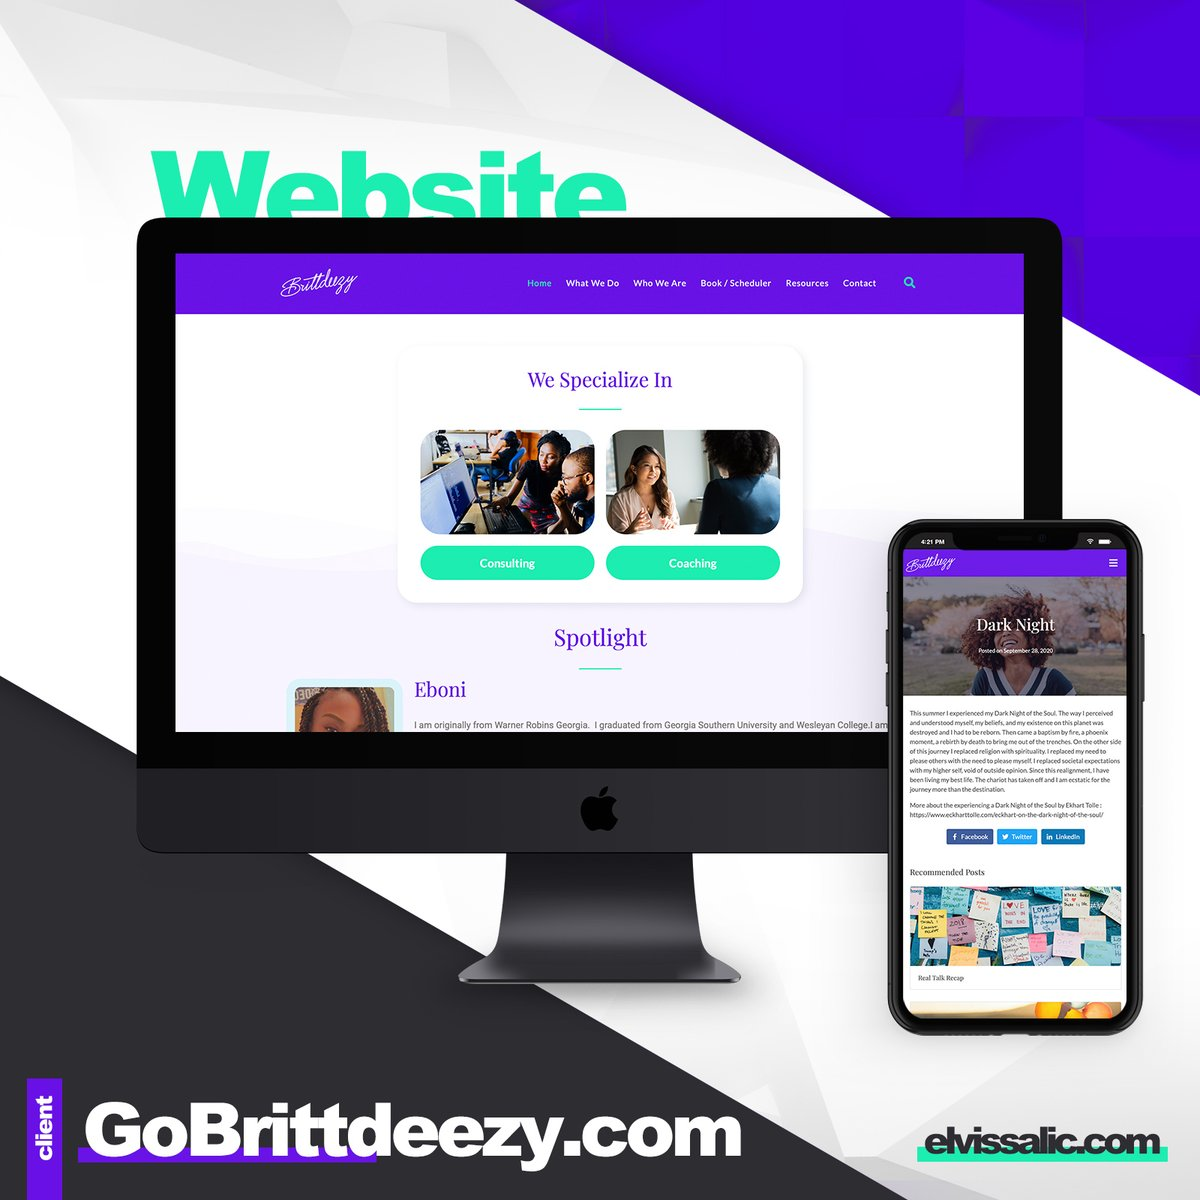 Website development for https://t.co/ScFdljC6zh   #graphicdesign #website #webdevelopment #sitedesign #websitedesign #webdesign #wordpress #mentalhealth #personaljourney #consulting #lifecoach #therapist #businessconsulting #personaldevelopment #selfcare #leadership https://t.co/pc2EInqQPn